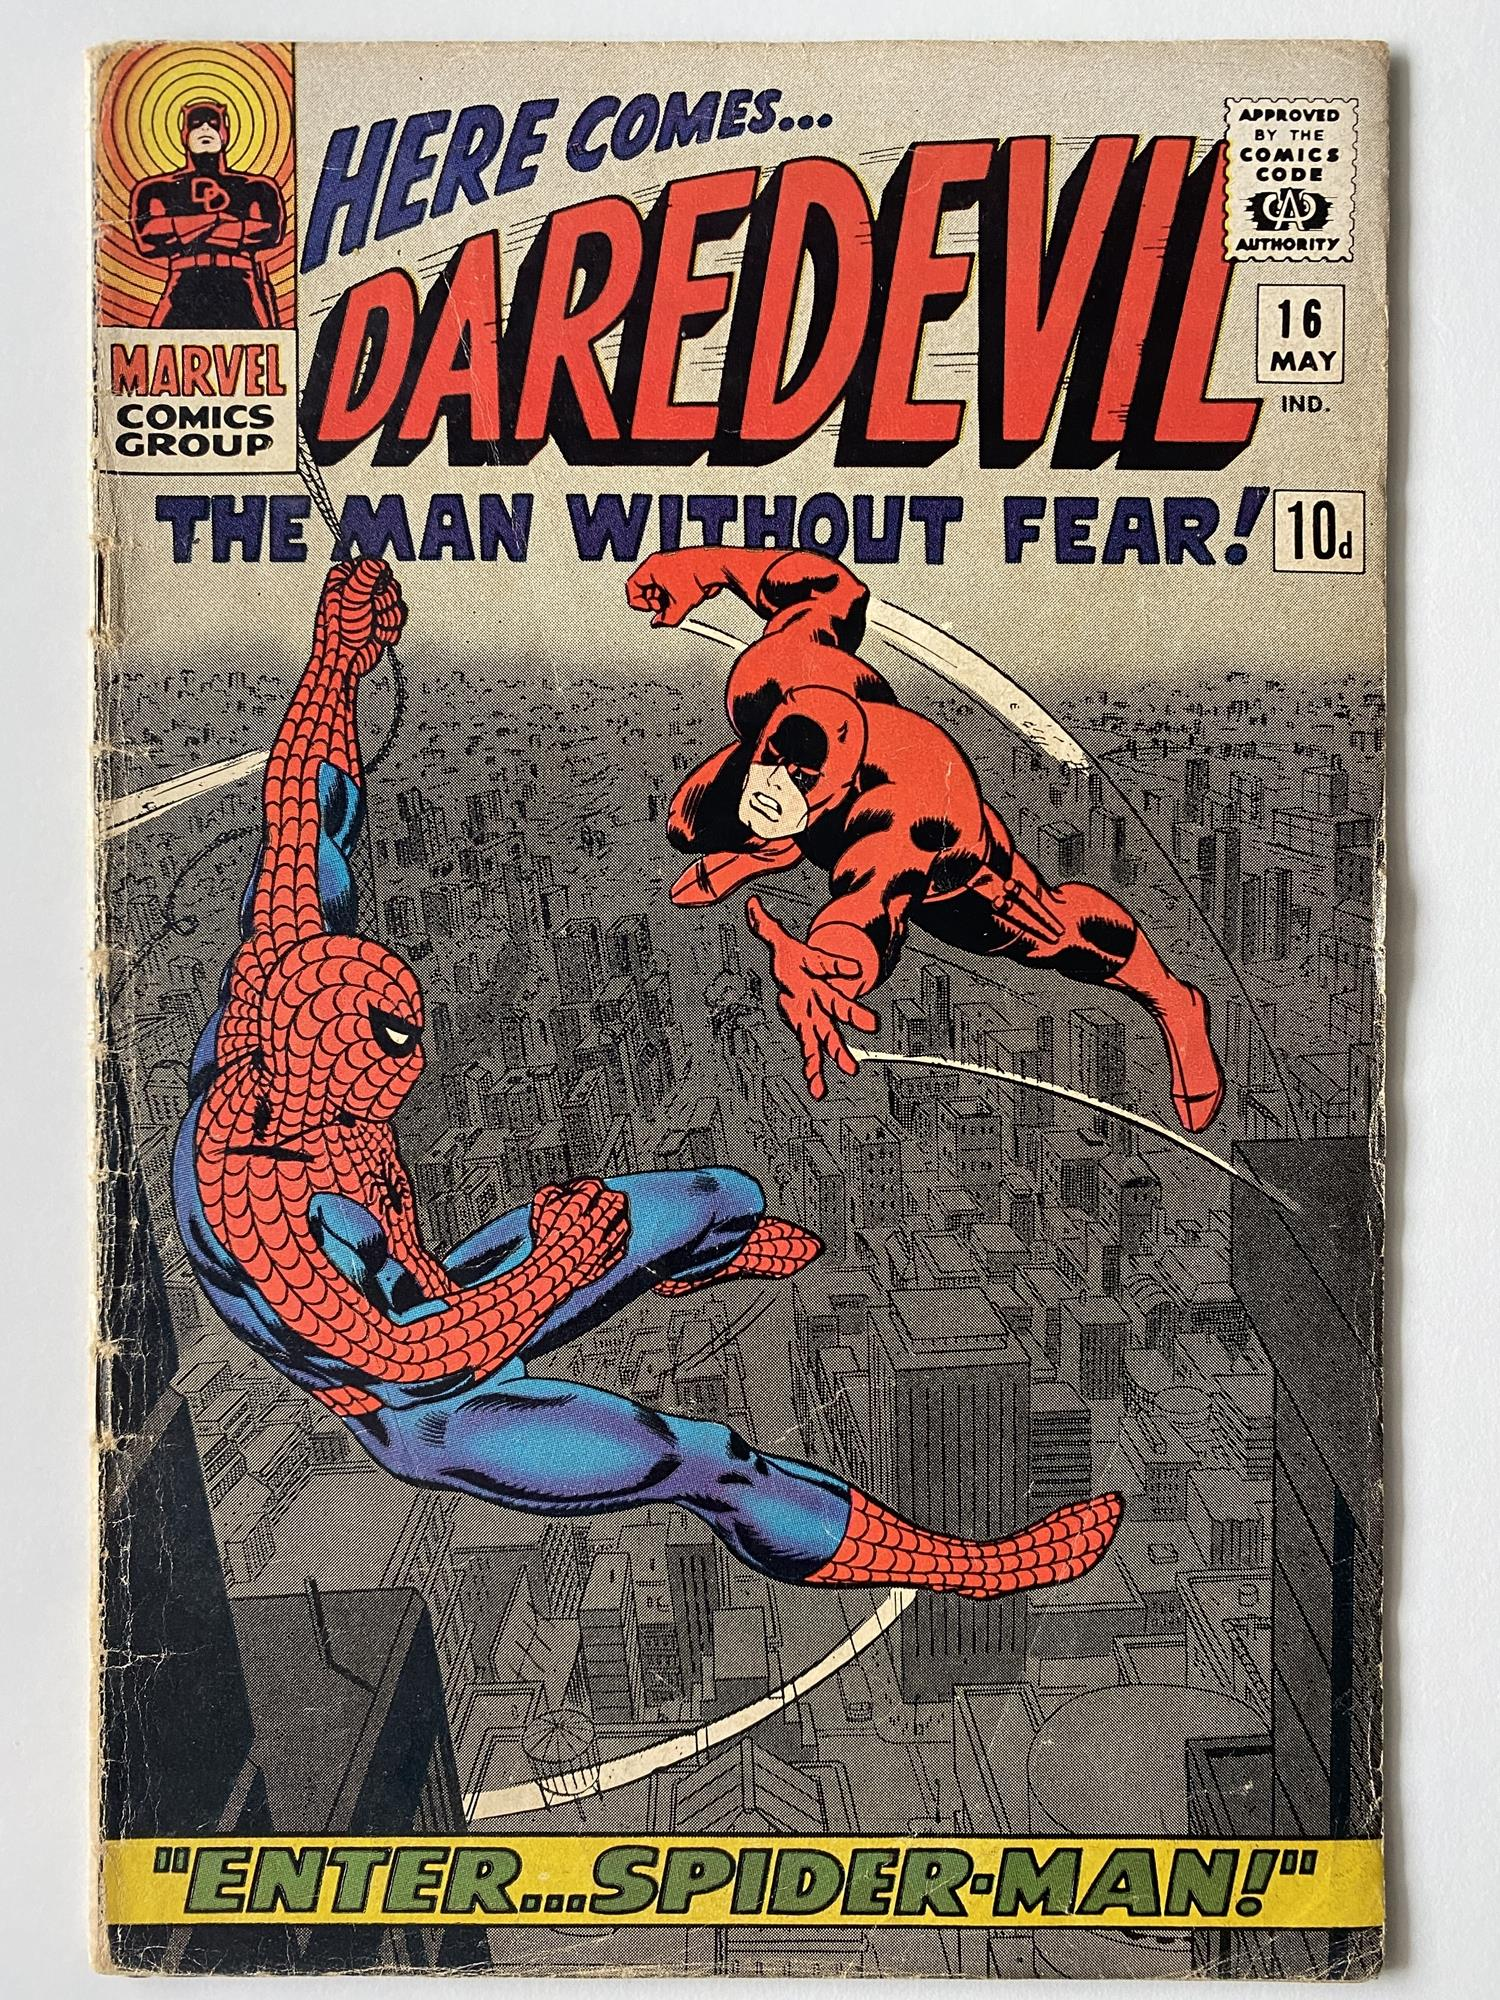 Lot 33 - DAREDEVIL # 16 (1966 - MARVEL - Pence Copy) - Spider-Man crossover + First appearance of the